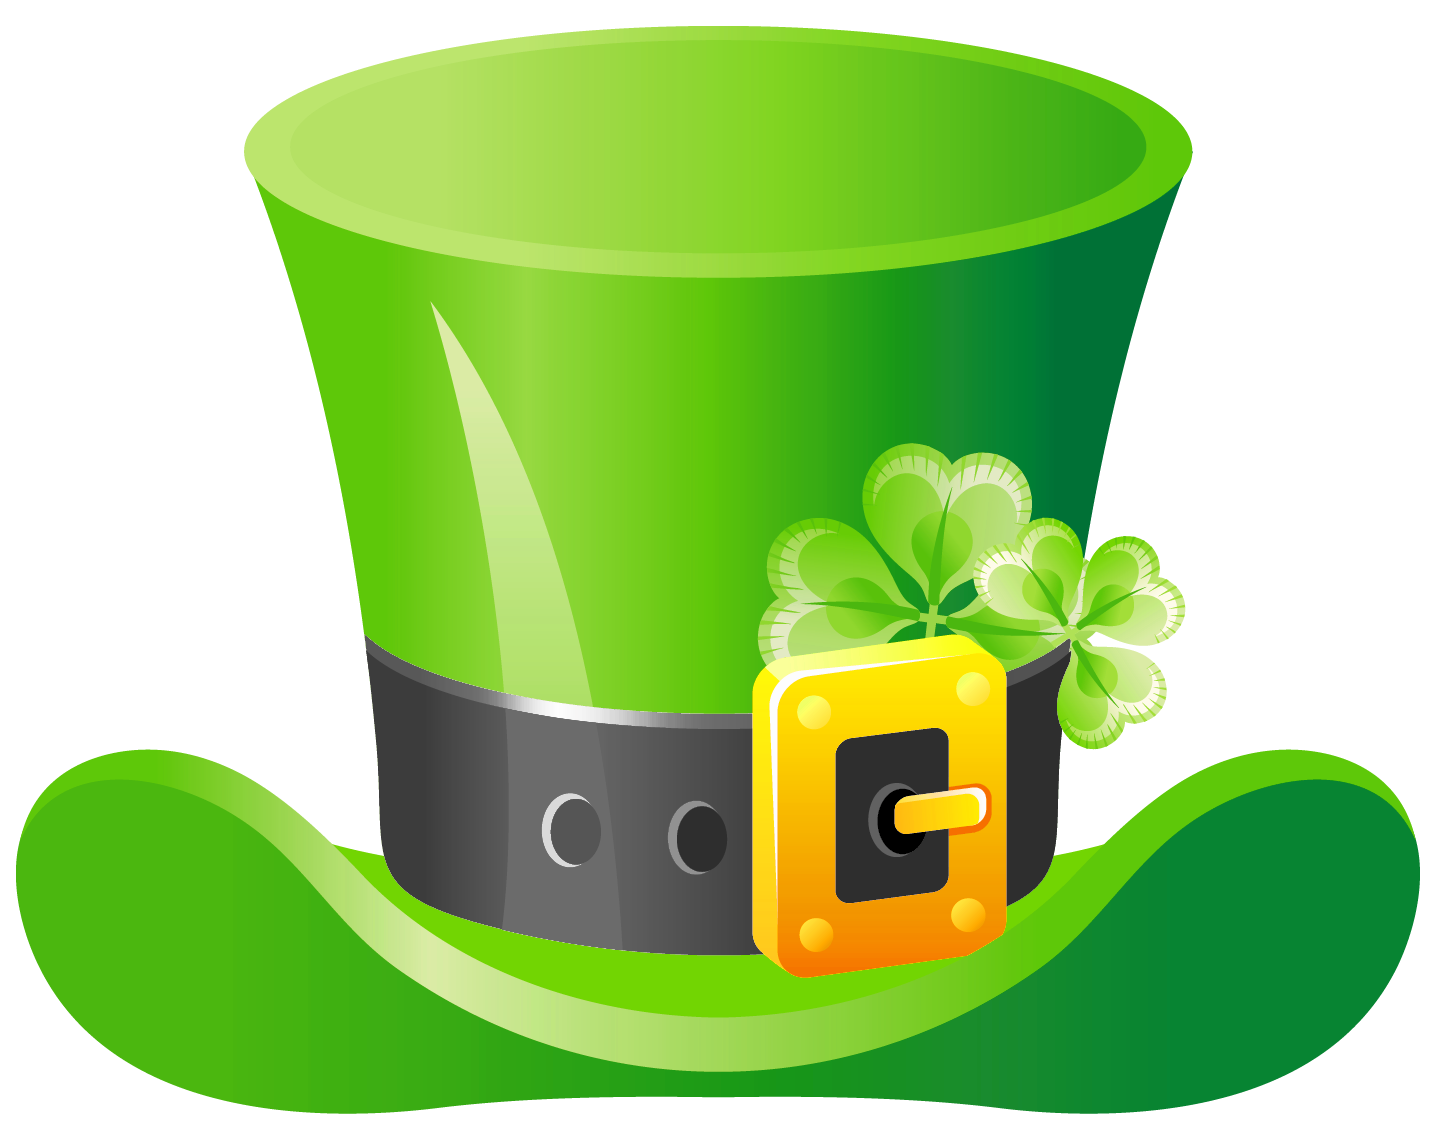 free st patricks day clipart at getdrawings com free for personal rh getdrawings com free st patricks day clipart borders free st patricks day clipart borders